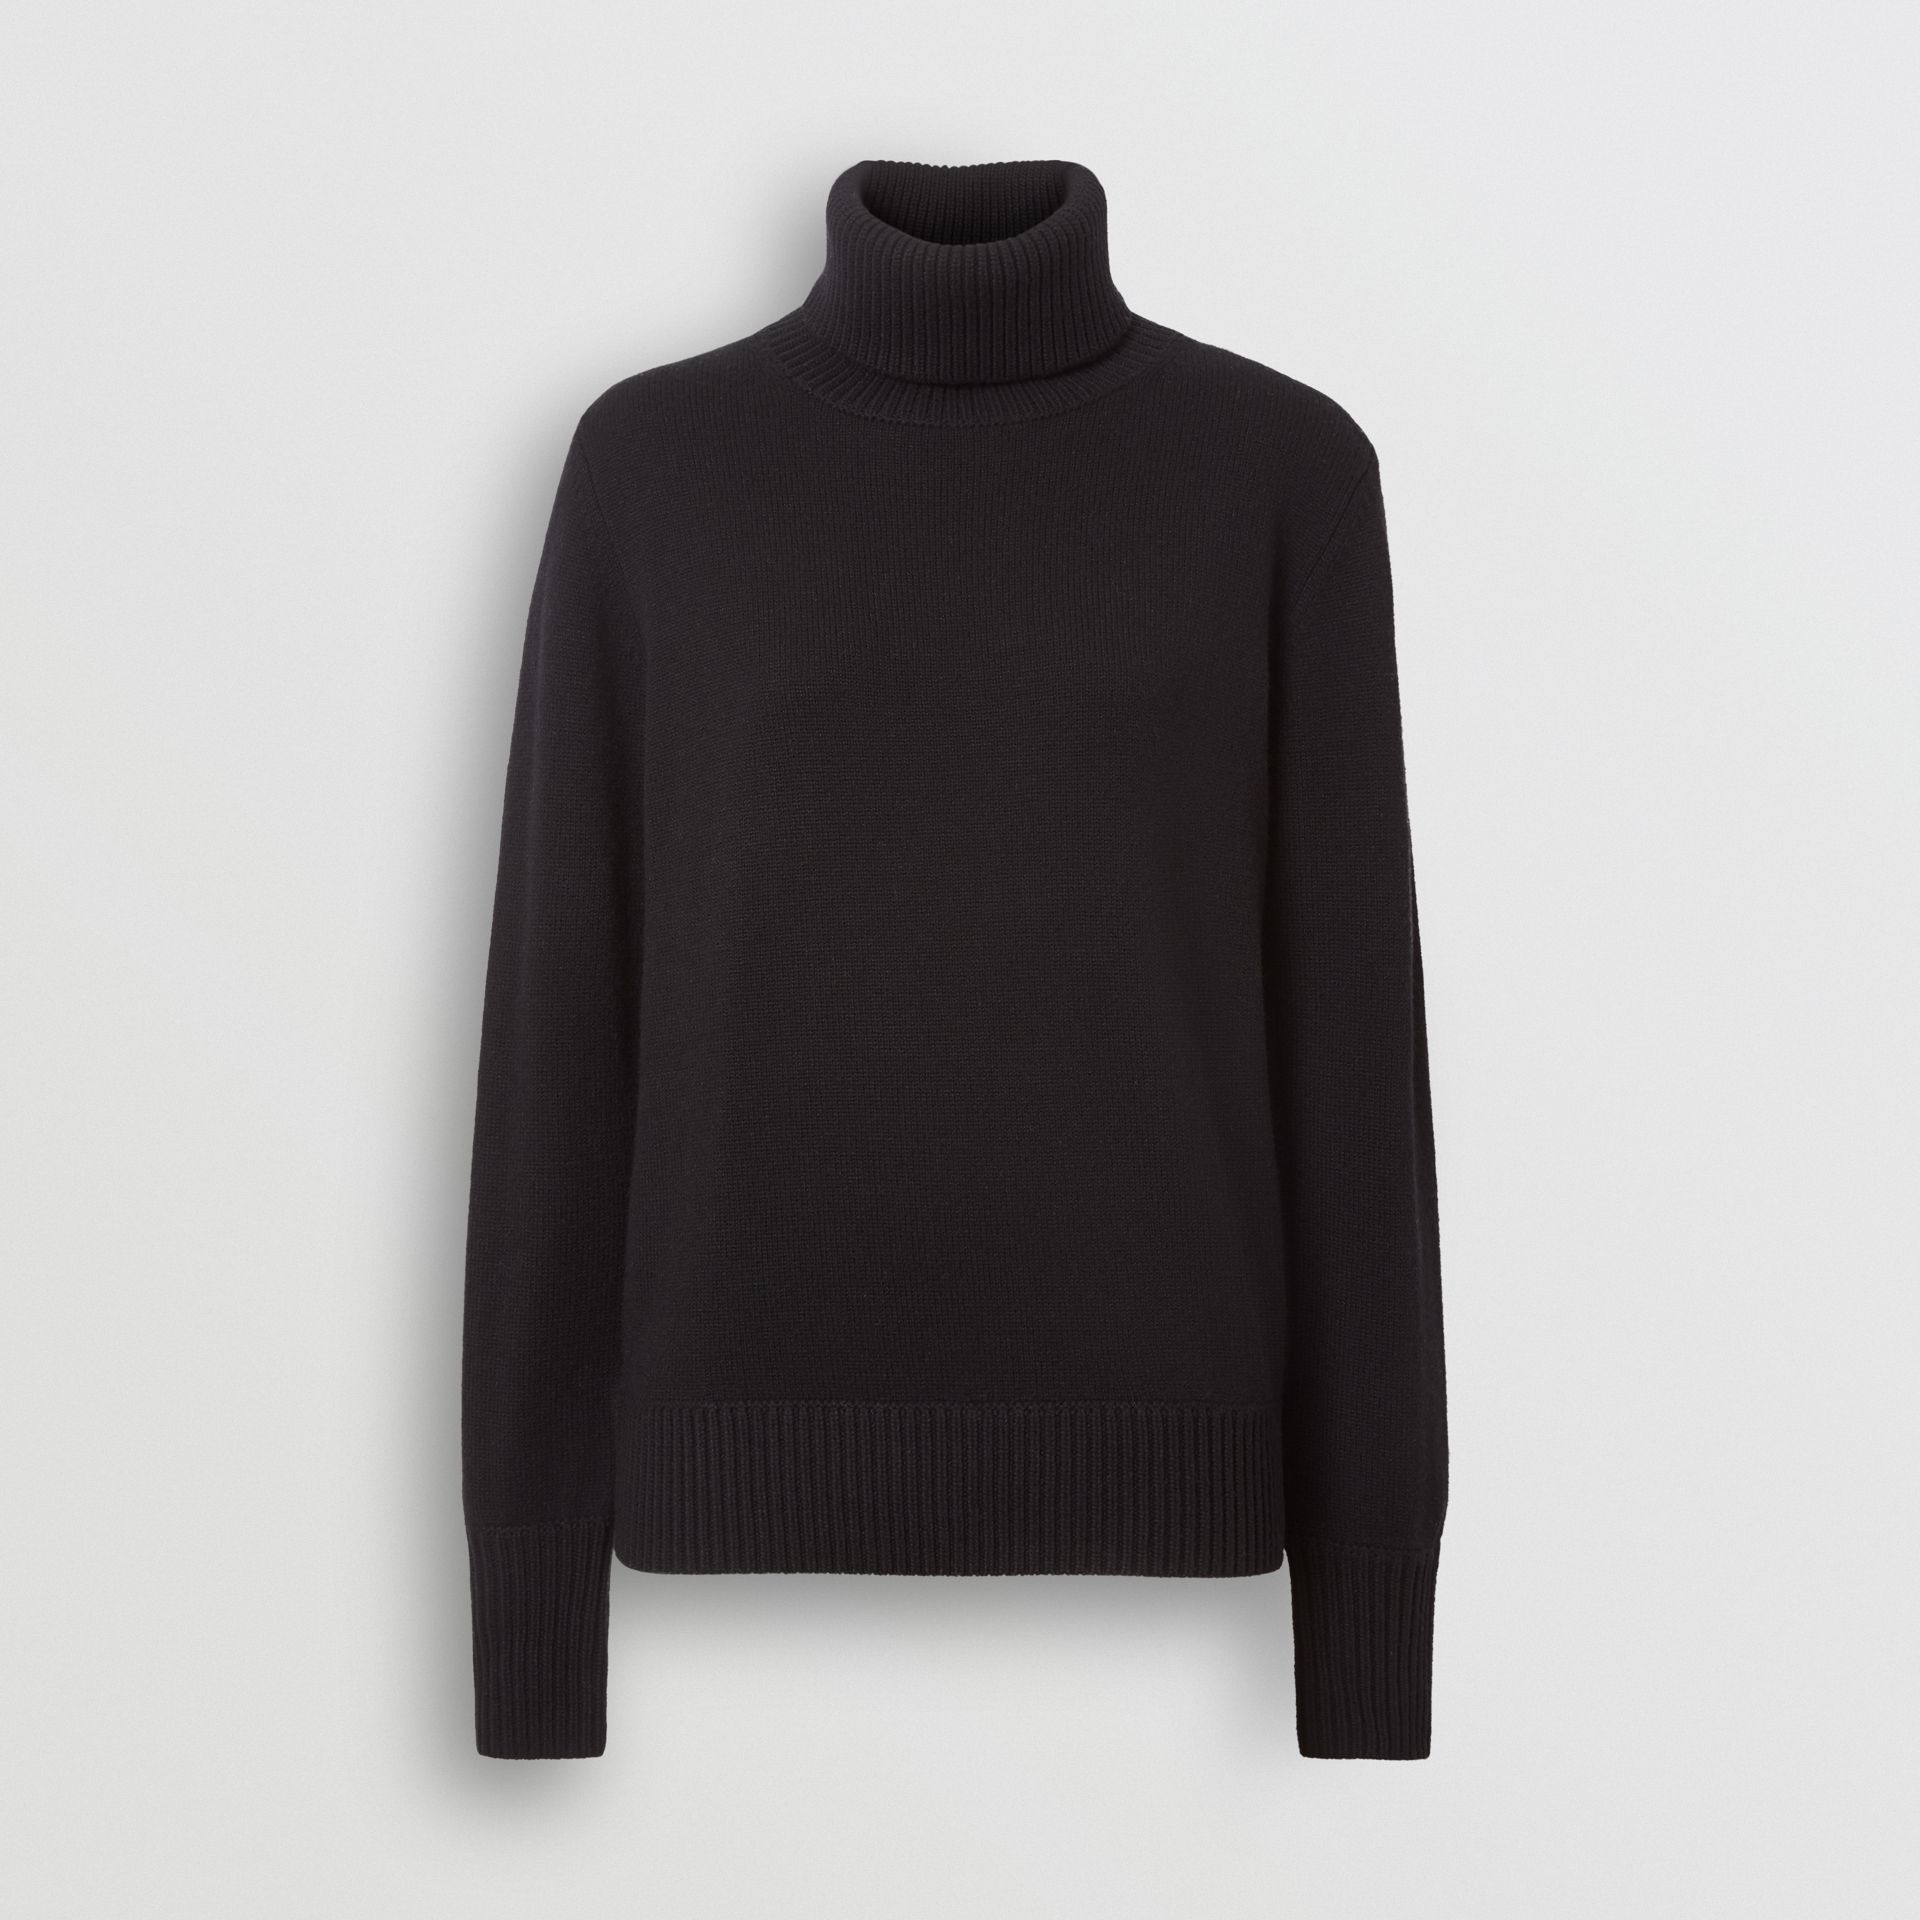 Embroidered Crest Cashmere Roll-neck Sweater in Black - Women | Burberry United Kingdom - gallery image 3